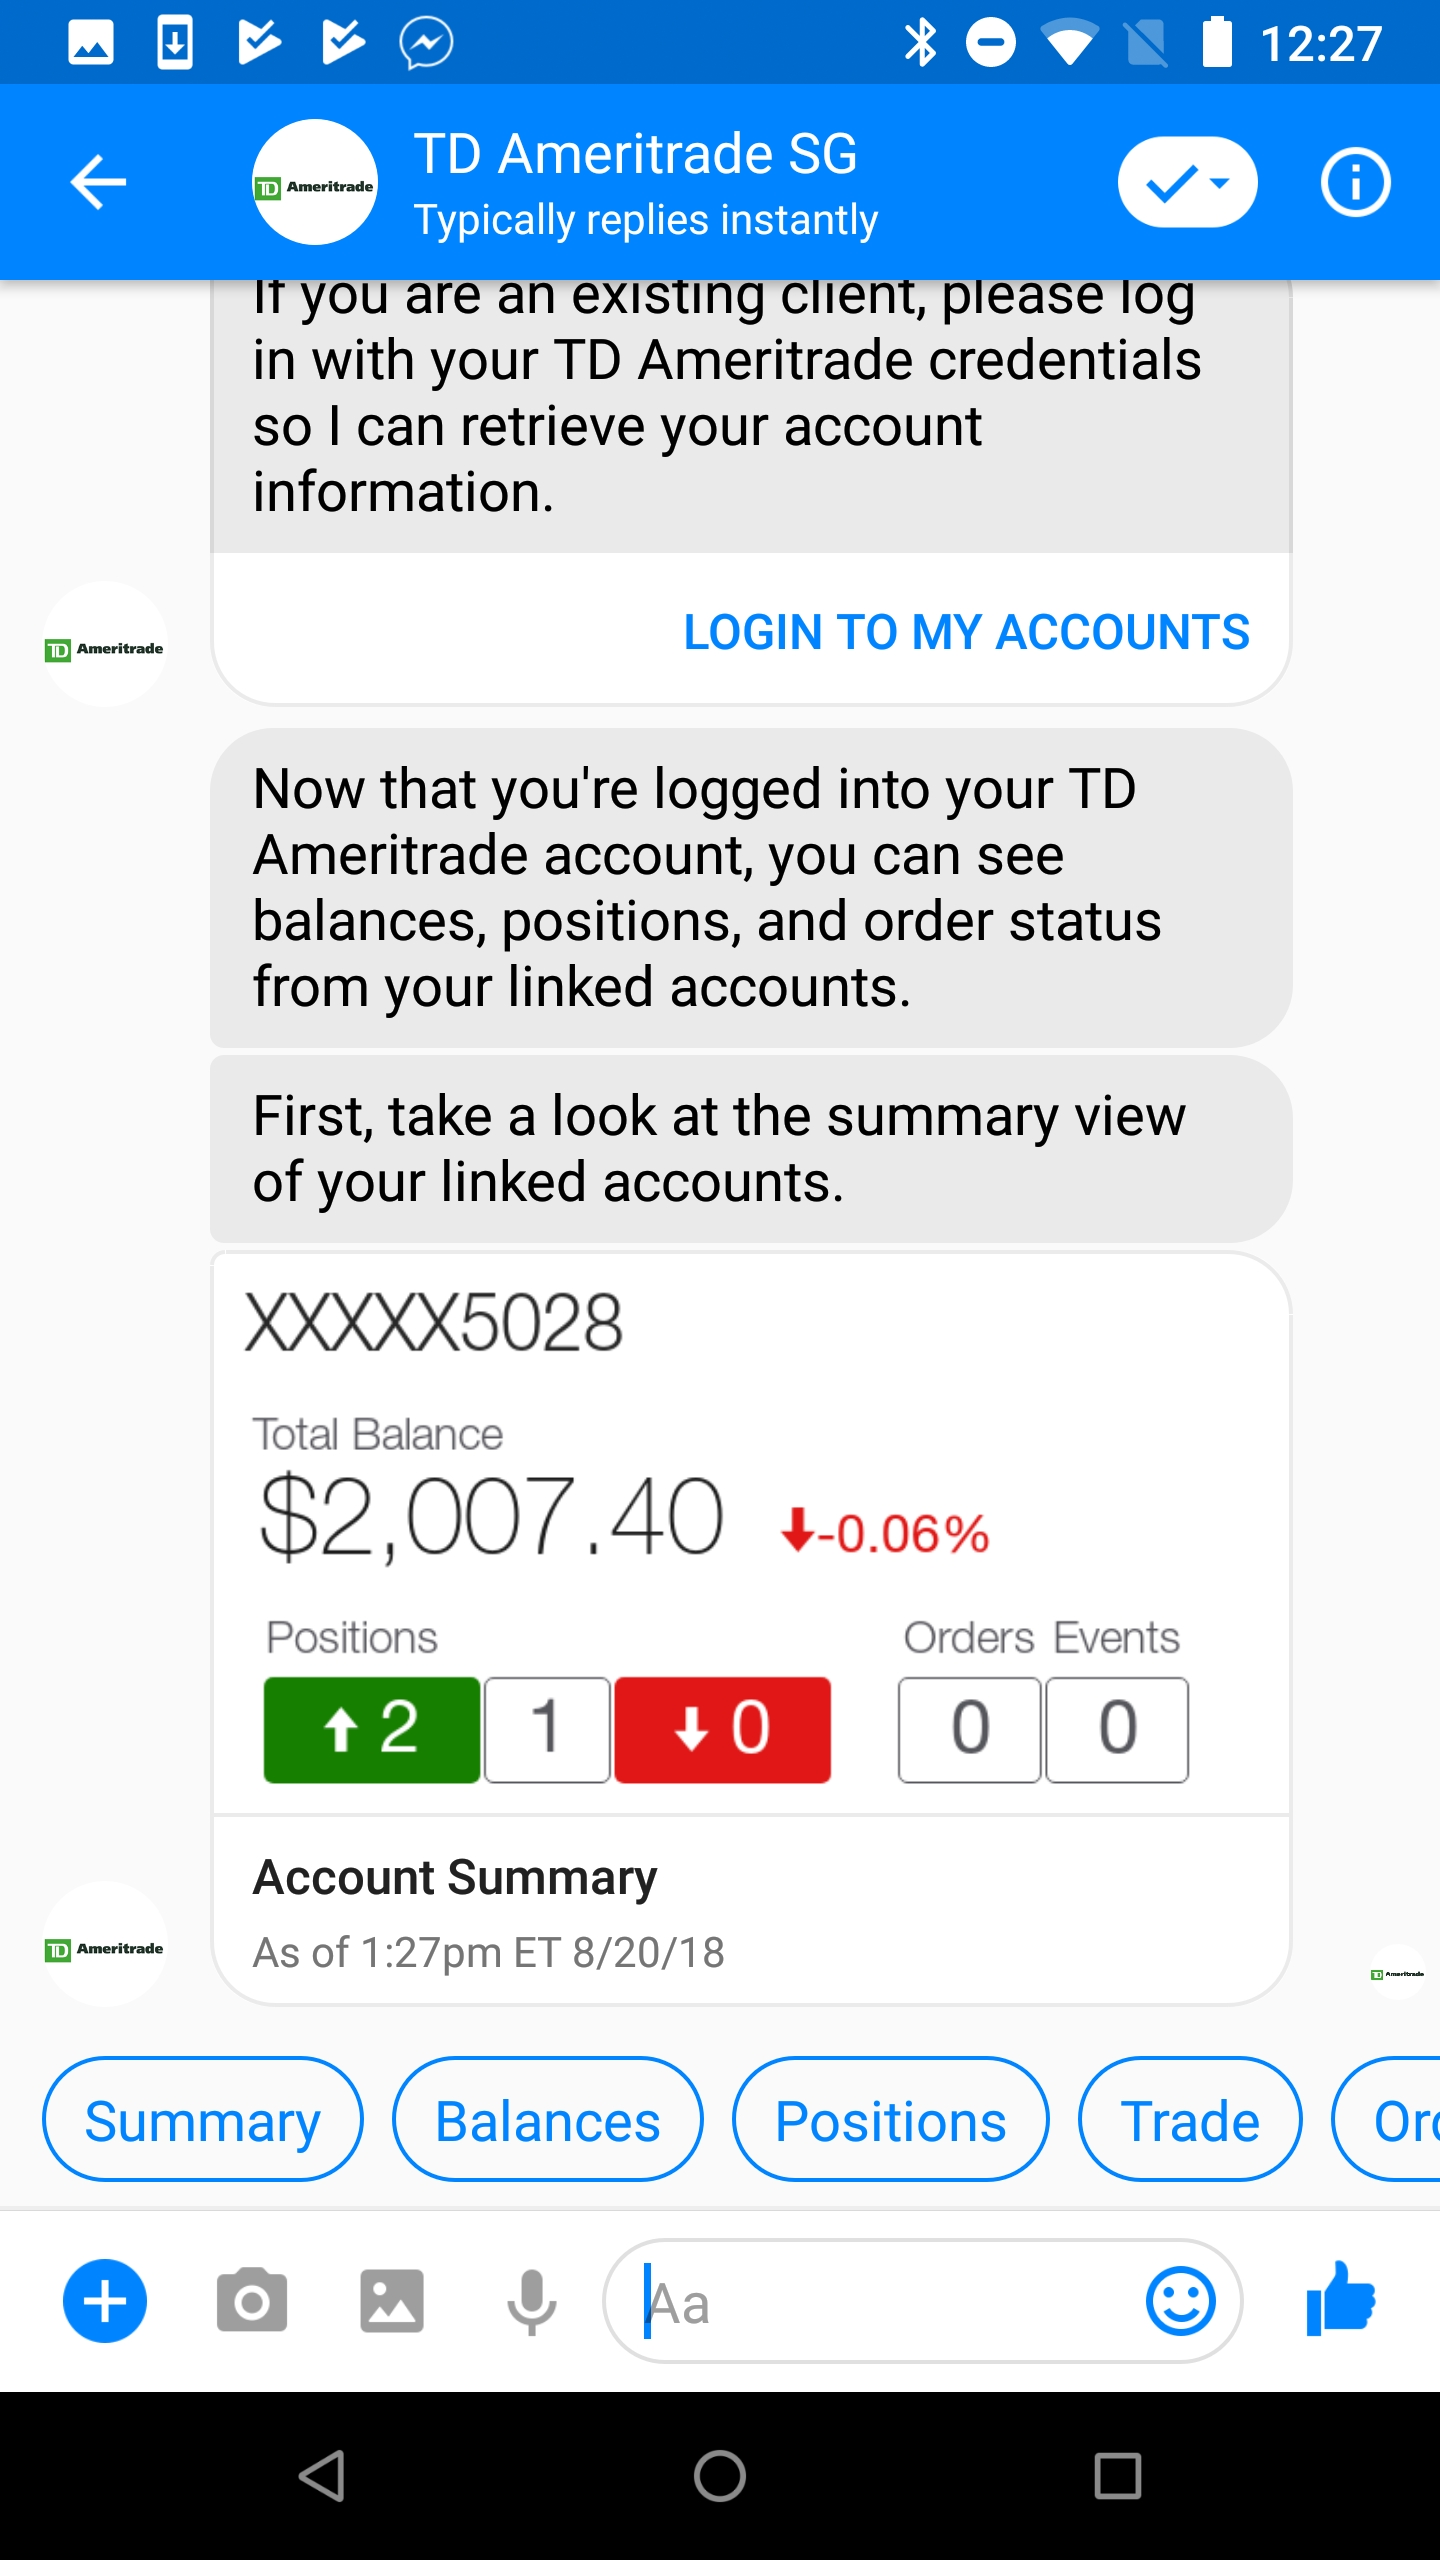 TD Ameritrade Launches AI Powered Chat Bot Experience for